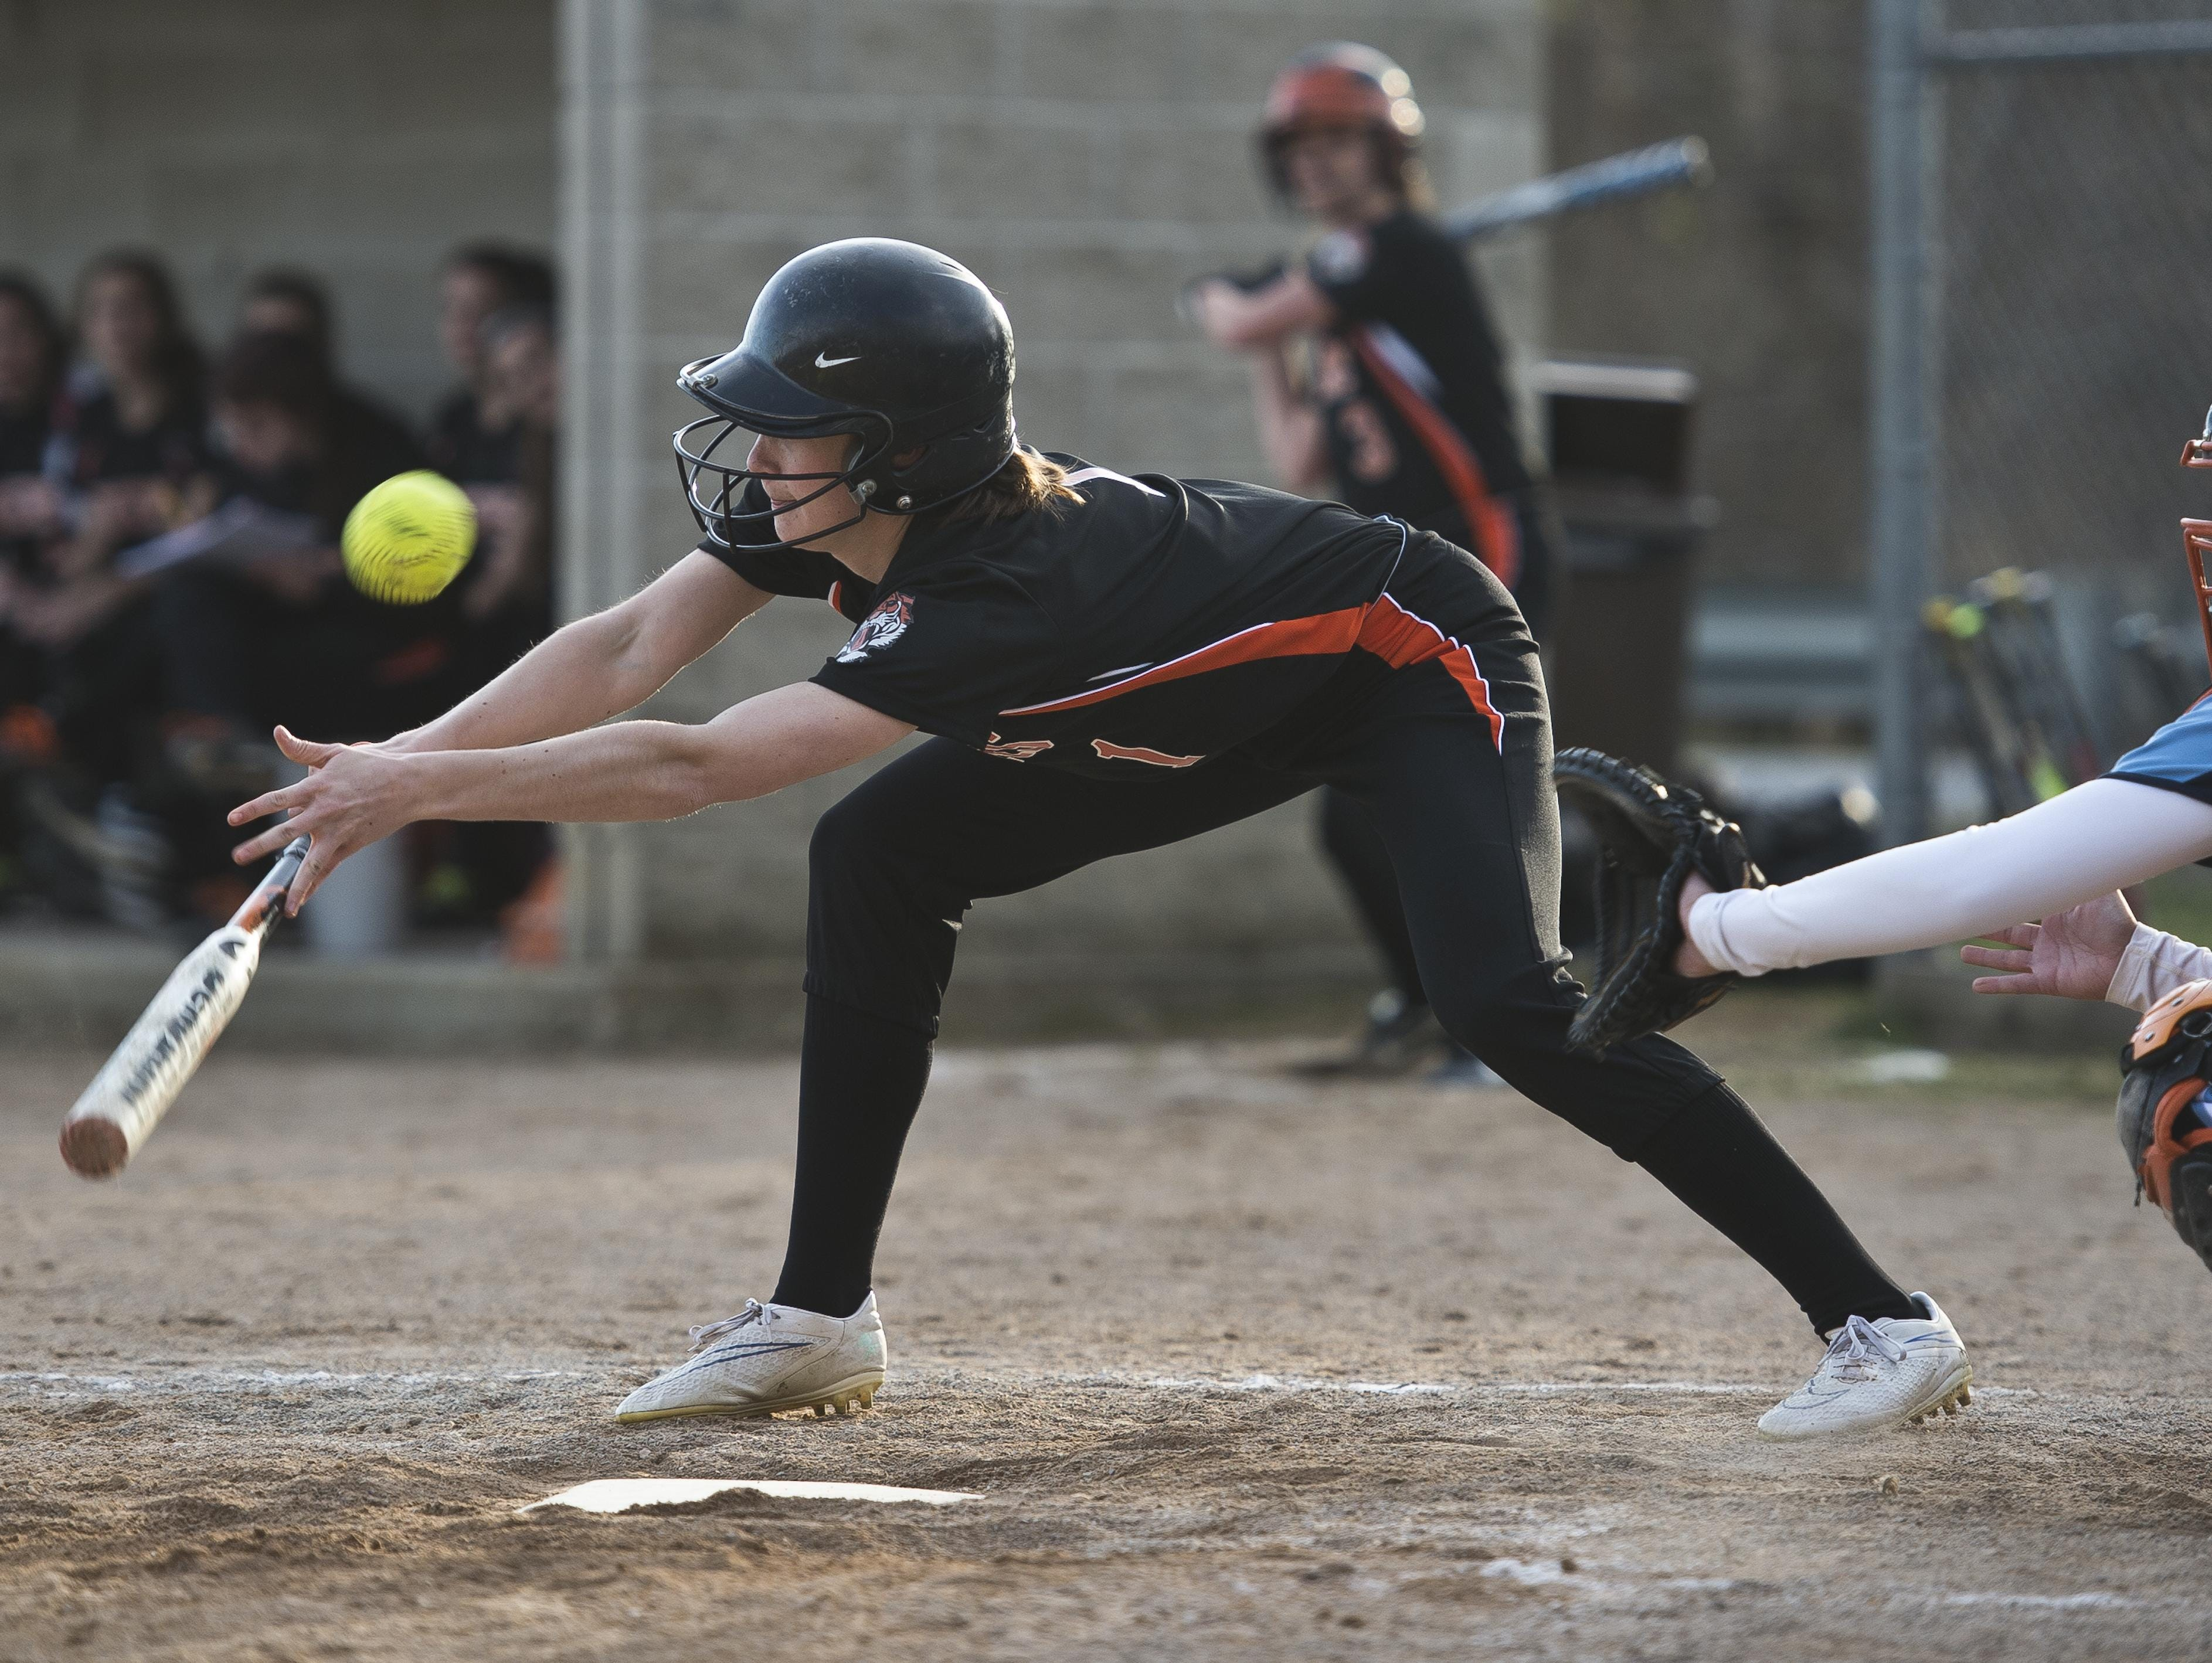 Middlebury's Lily Smith attempts to lay down a bunt during a game in April. Smith, the daughter of Vermont Shrine football coach Dennis Smith, has become a three-sport athlete since a surgery to correct scoliosis at a Shriners hospital.